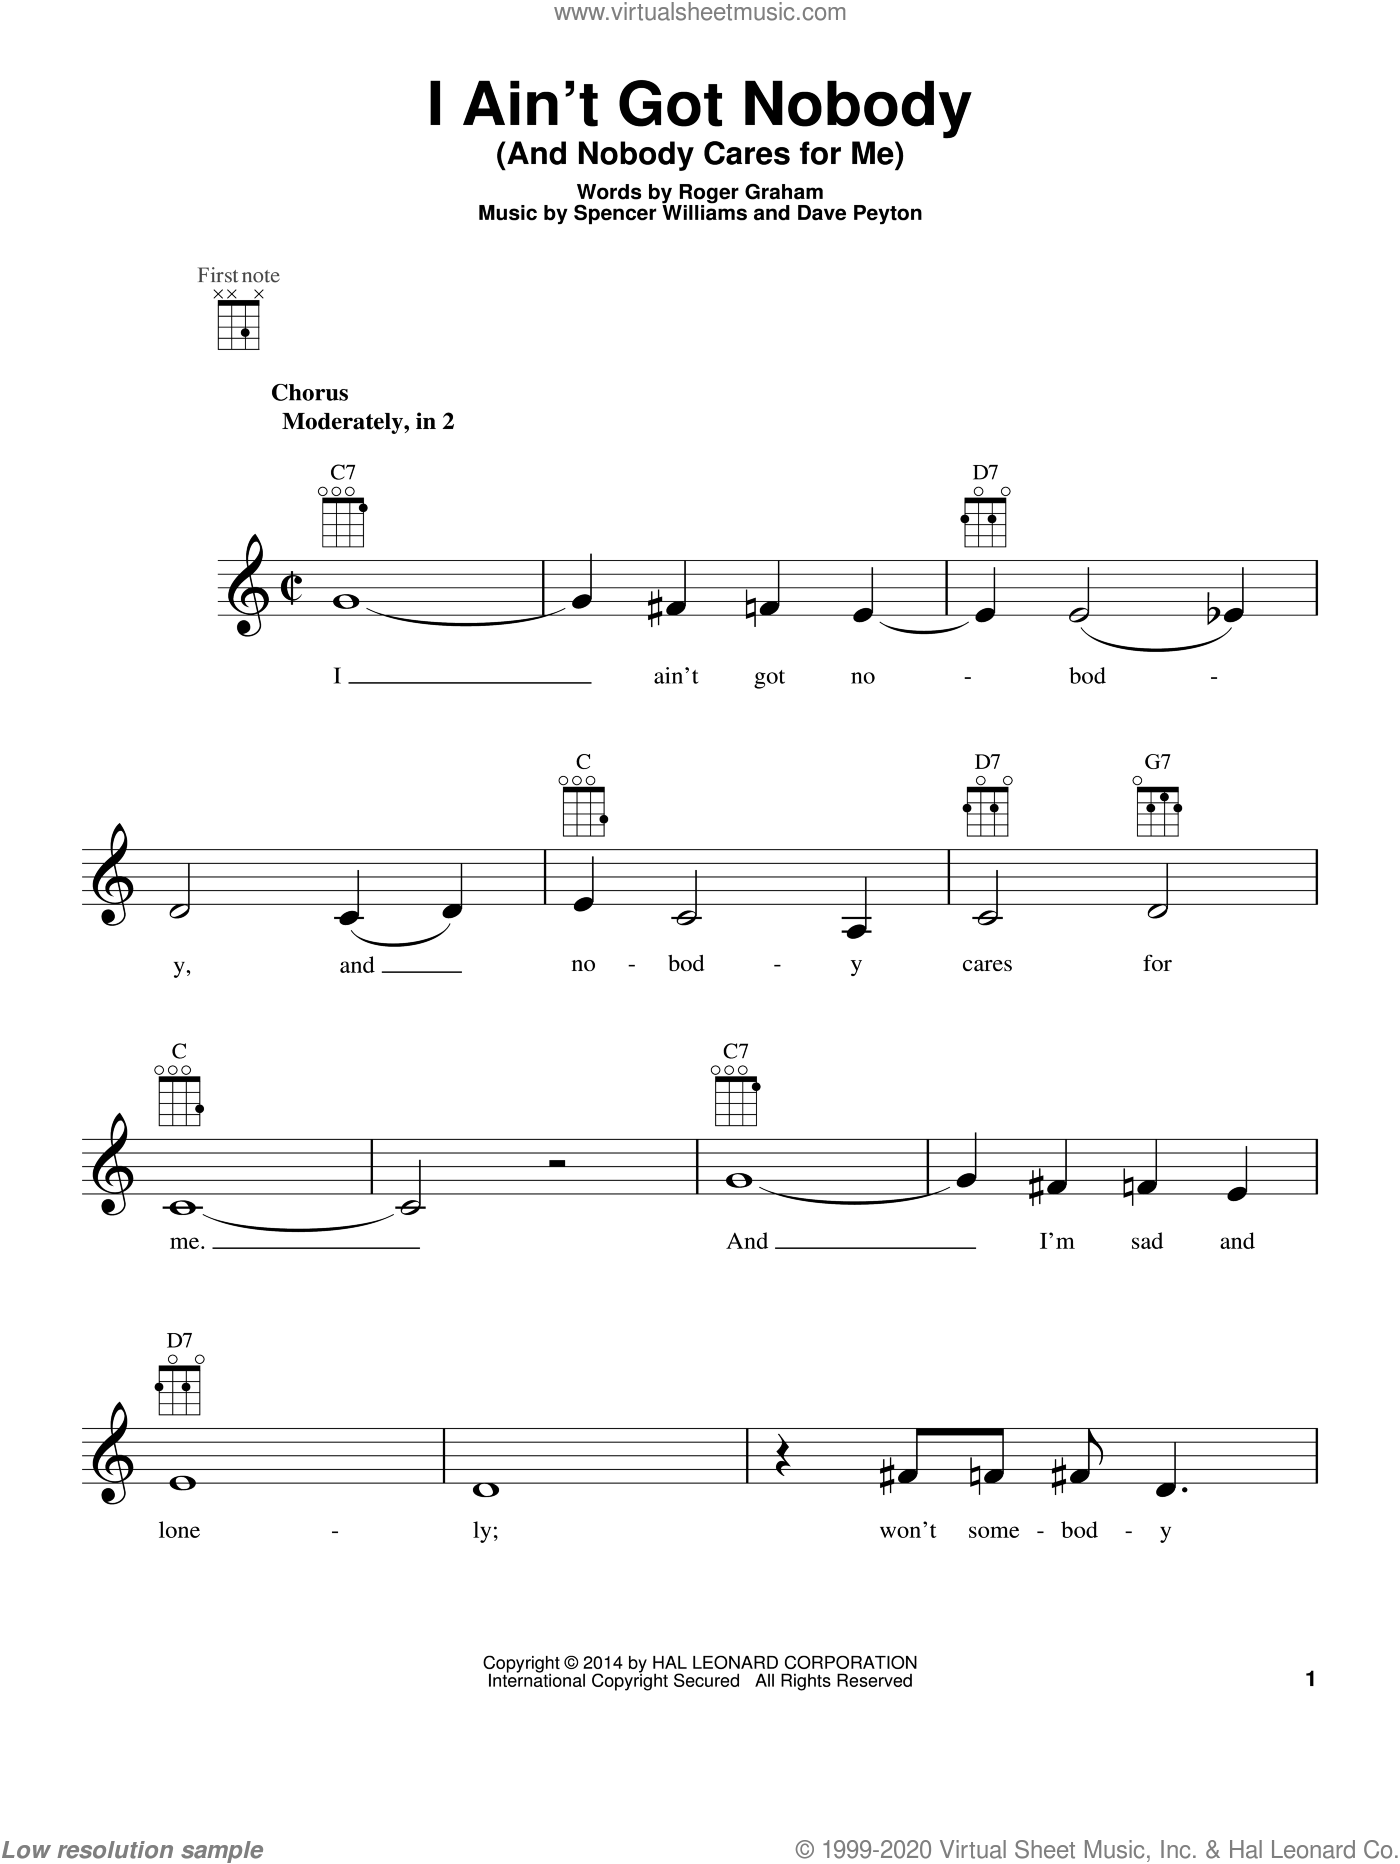 I Ain't Got Nobody (And Nobody Cares For Me) sheet music for ukulele by Spencer Williams